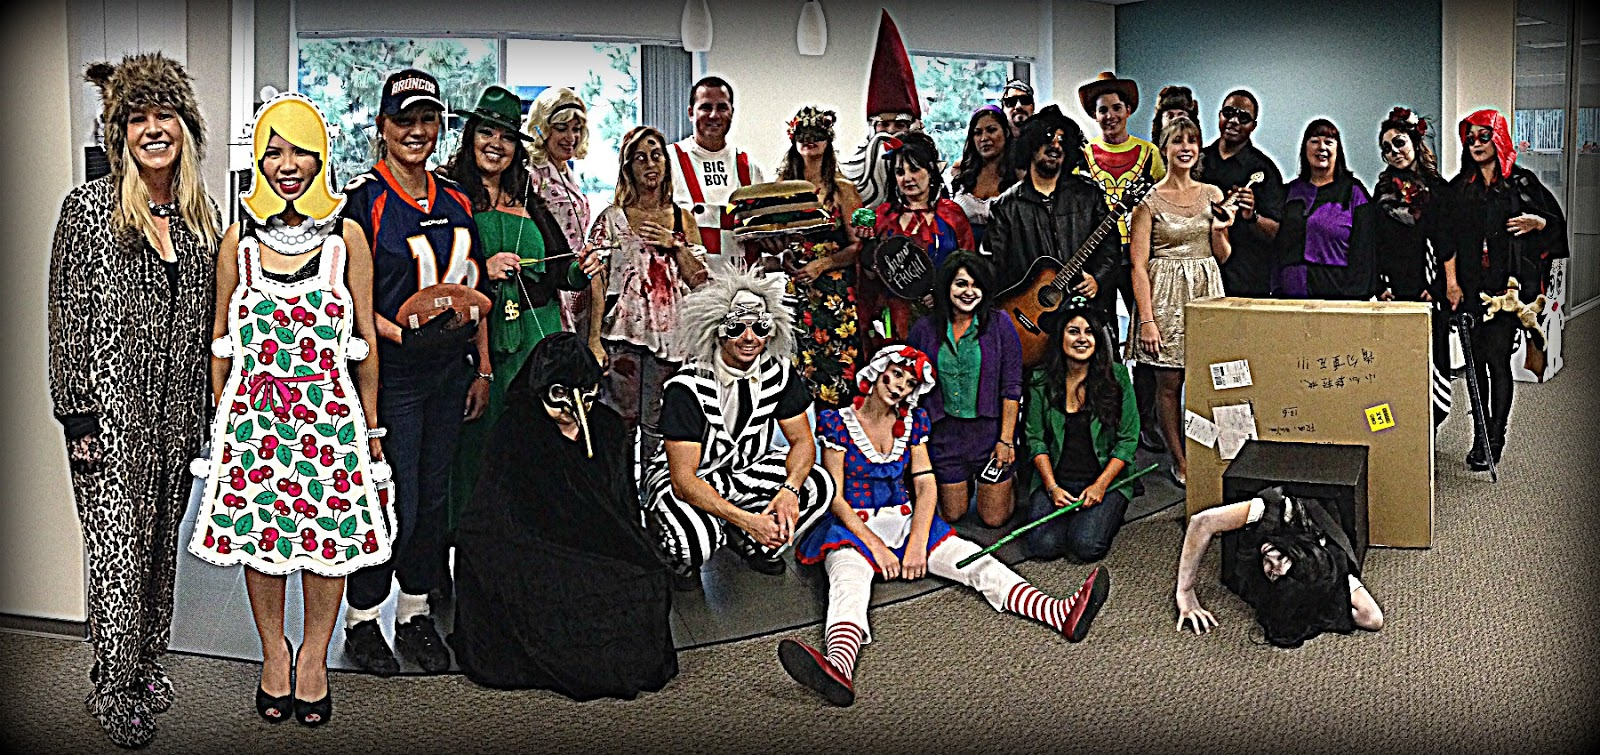 Office halloween costumes - Halloween Wrap Up A Day At The Office In Costume